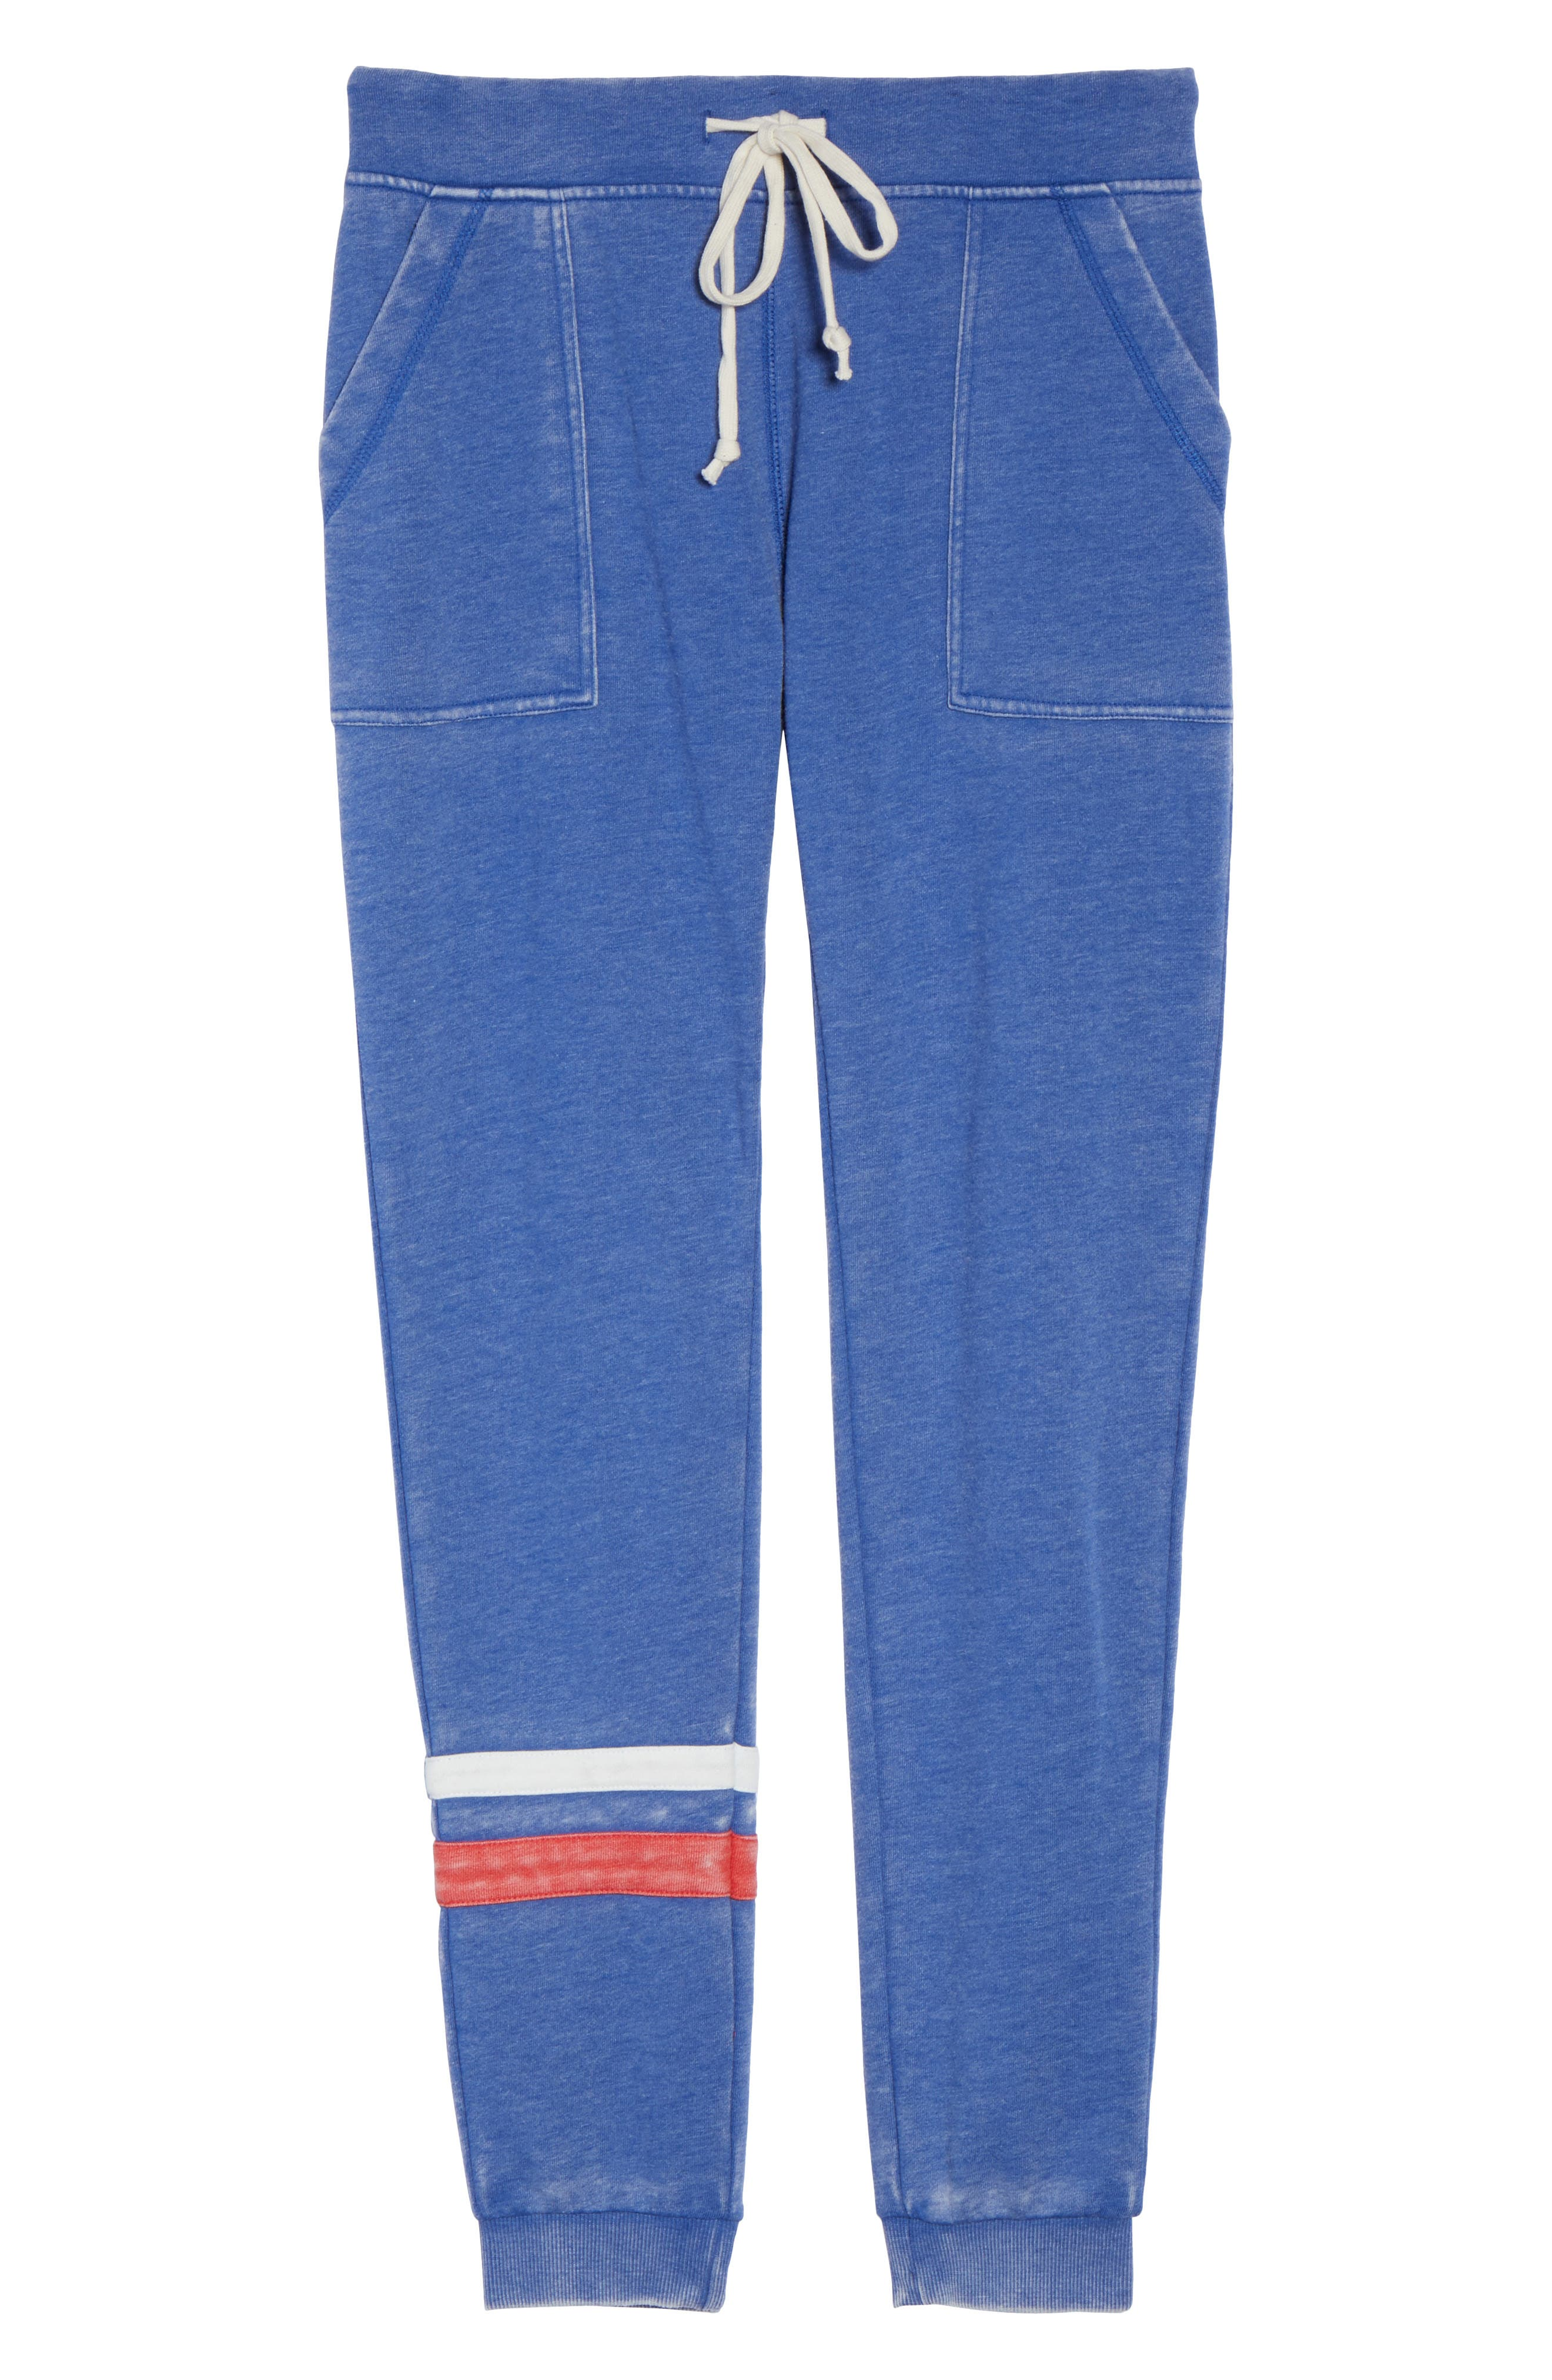 Long Weekend Lounge Jogger Pants,                             Alternate thumbnail 6, color,                             400